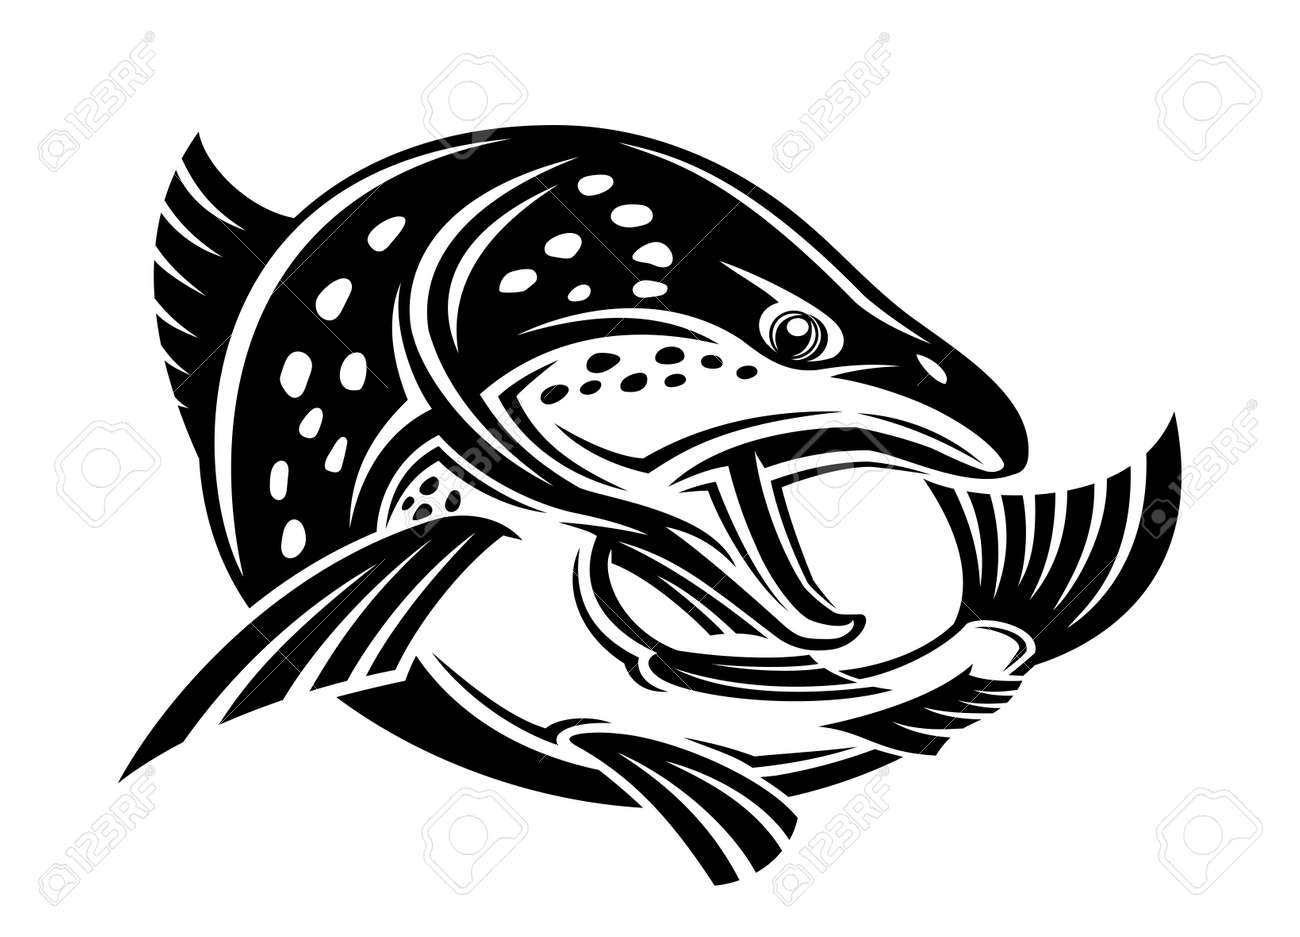 Illustration with fish icon on white background. - 167225278